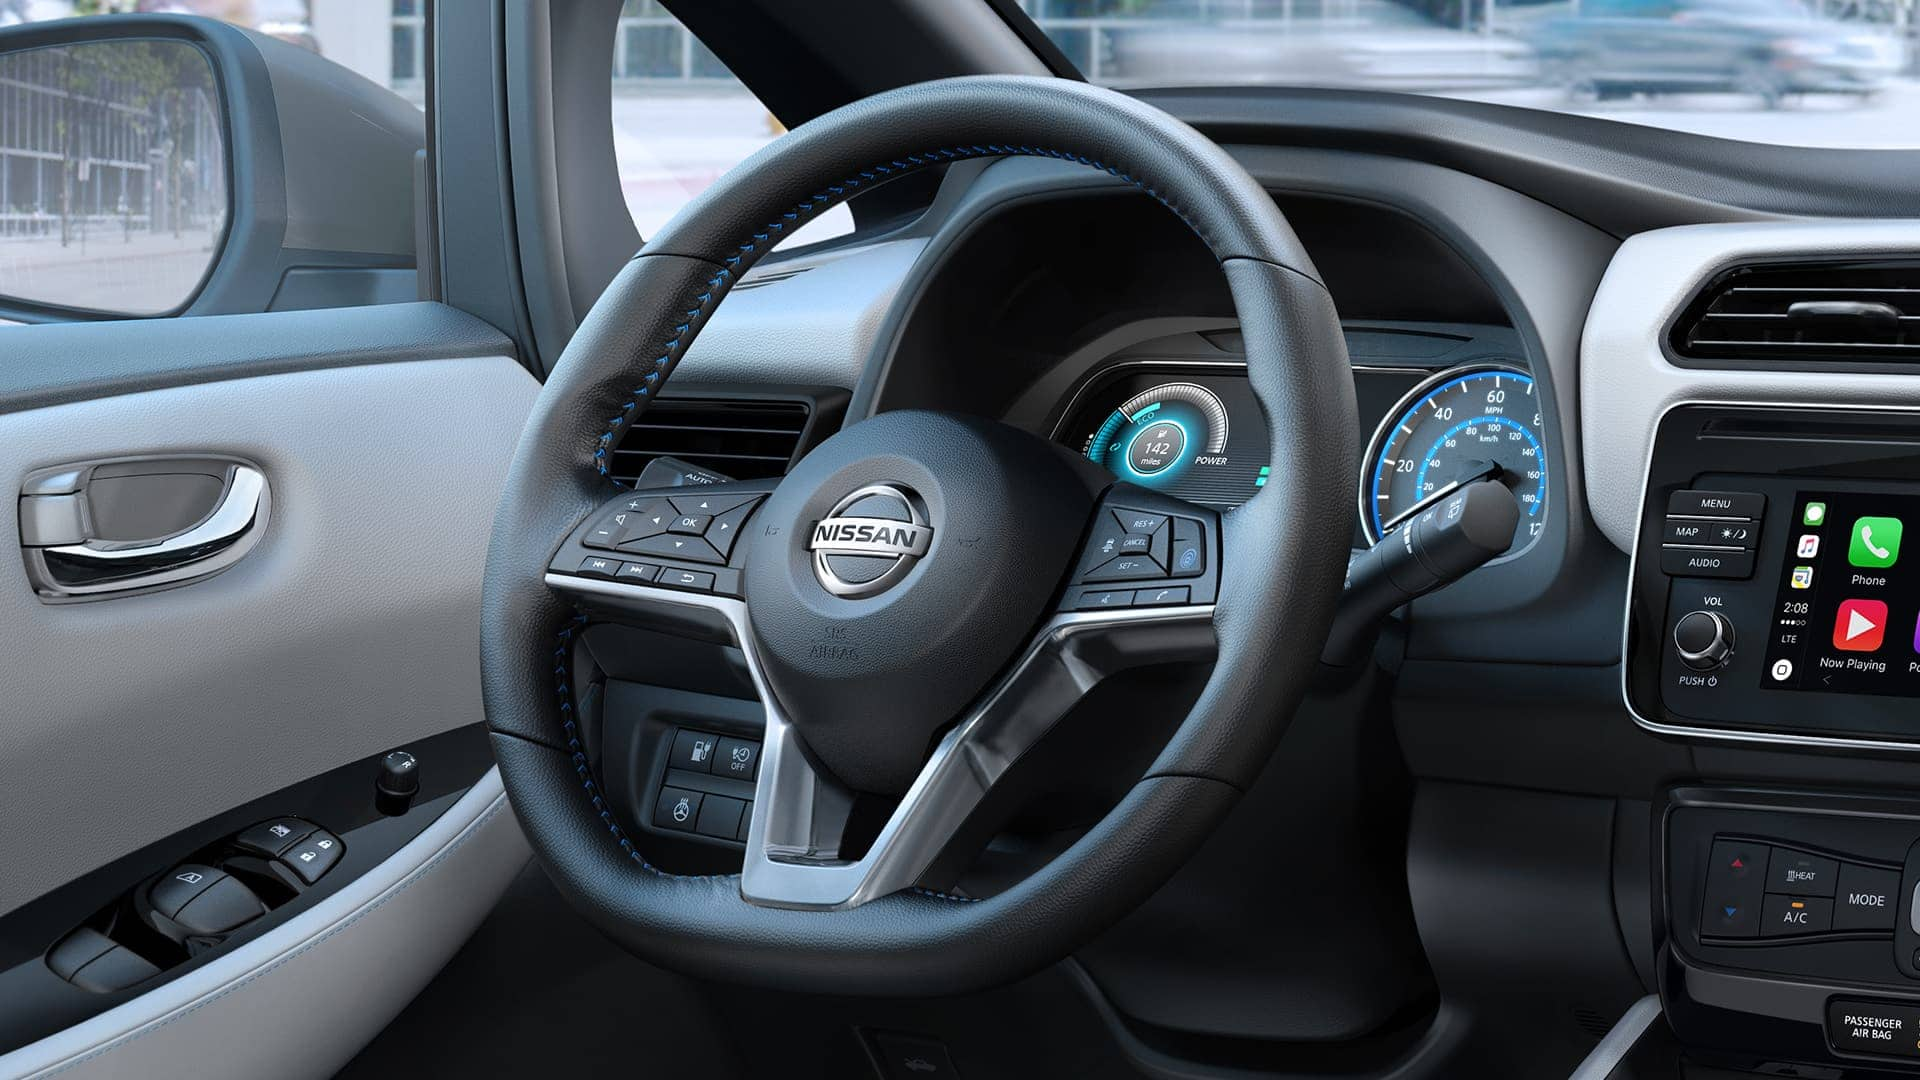 2019 Nissan Leaf Gray Interior Seating Picture